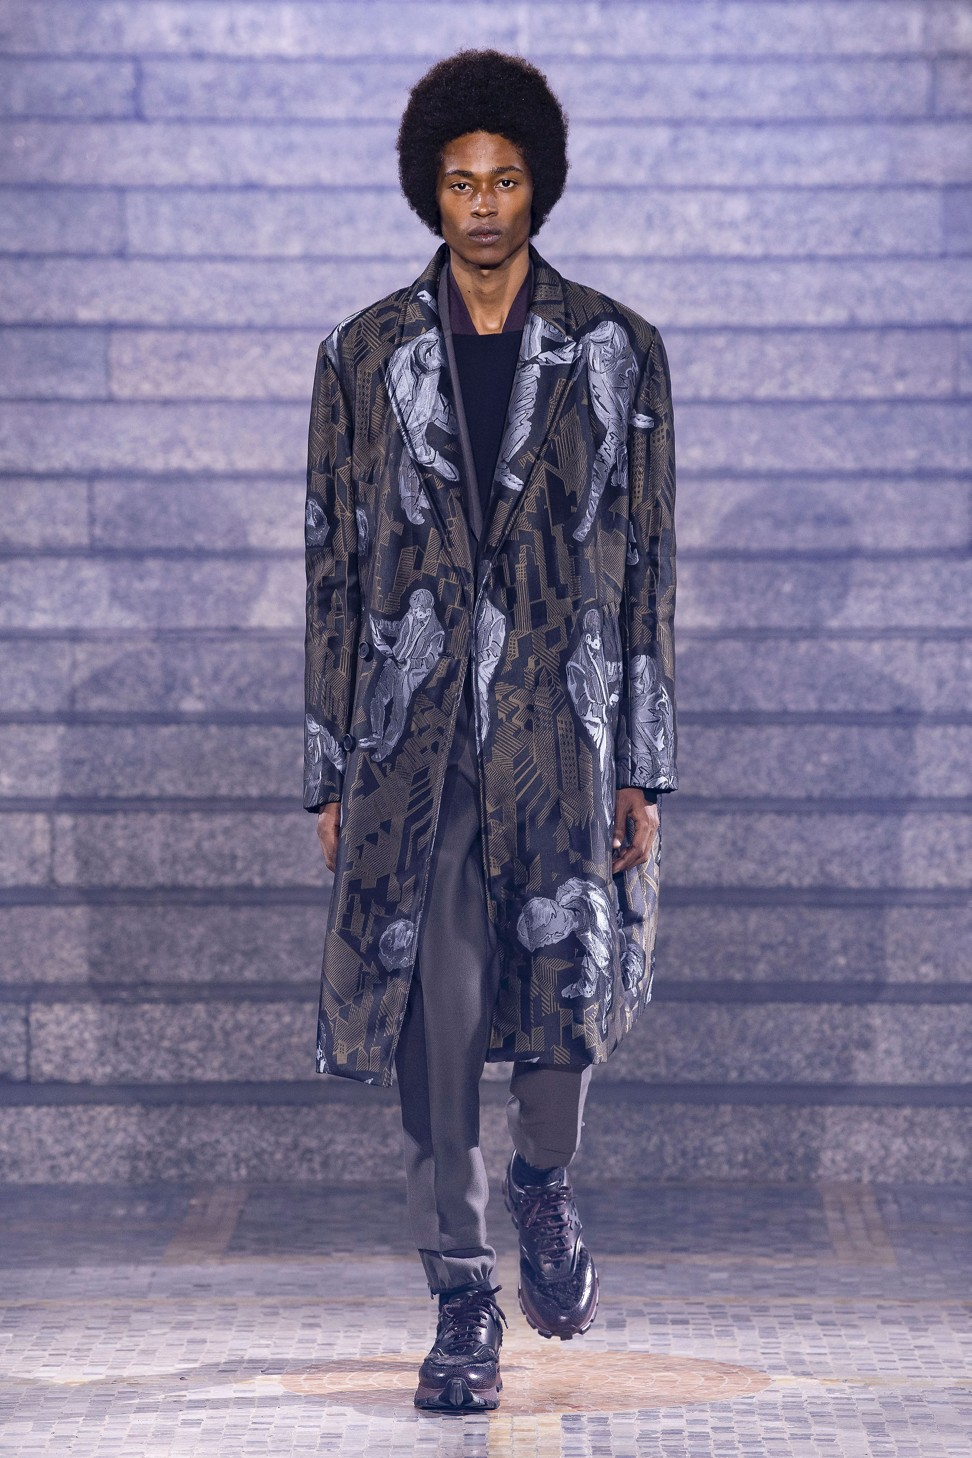 STYLE Edit: Ermenegildo Zegna's chic fall/winter 2019 collection embraces sustainable luxury